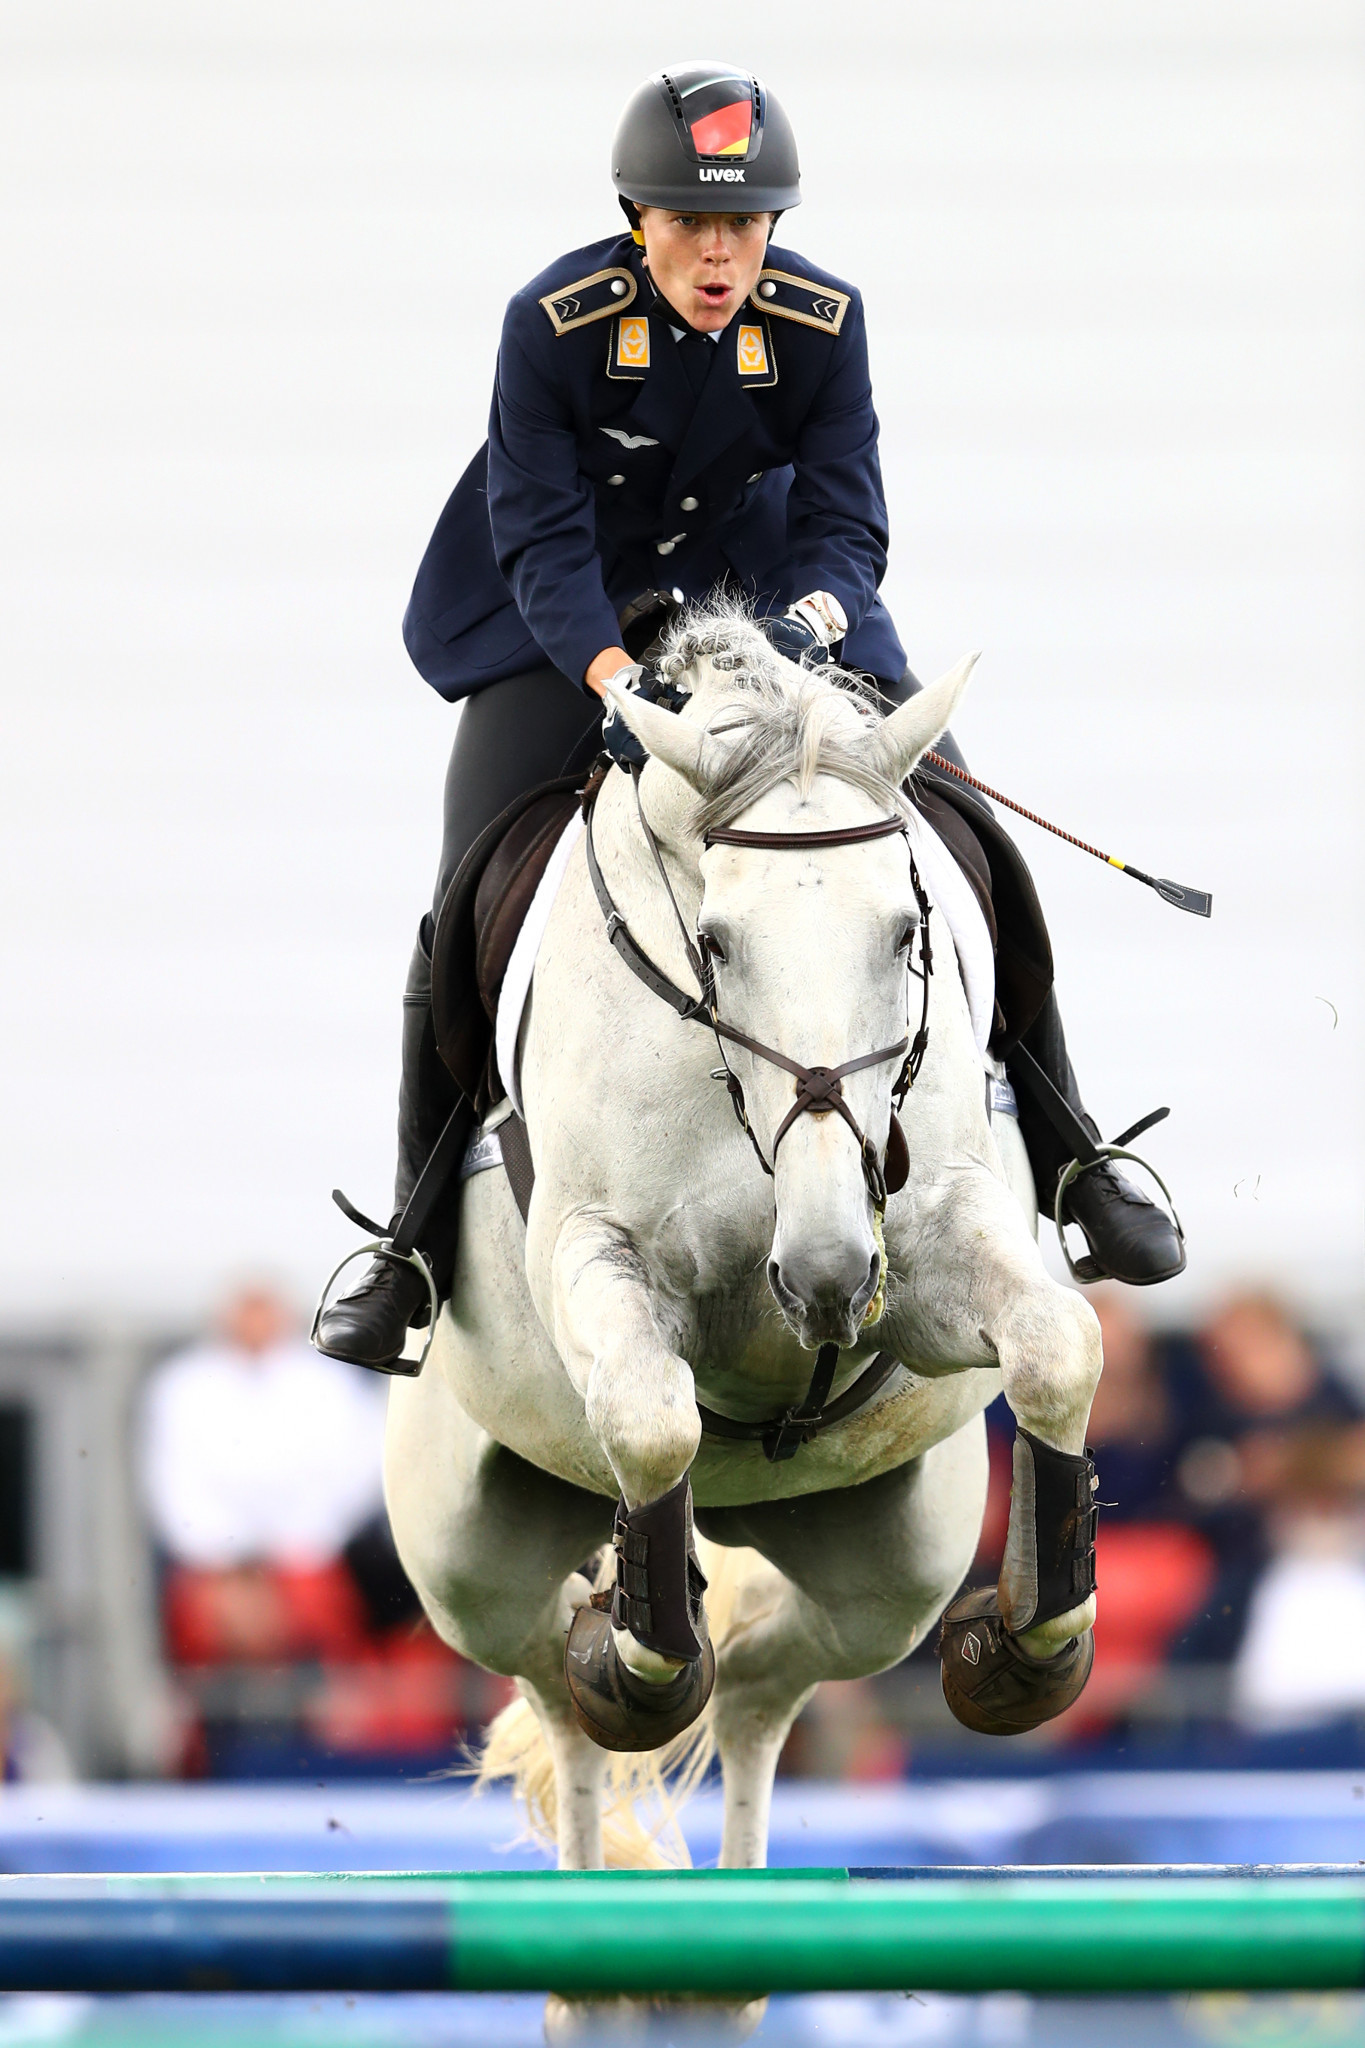 Germany's Annika Schleu topped the B qualification standings ©Getty Images